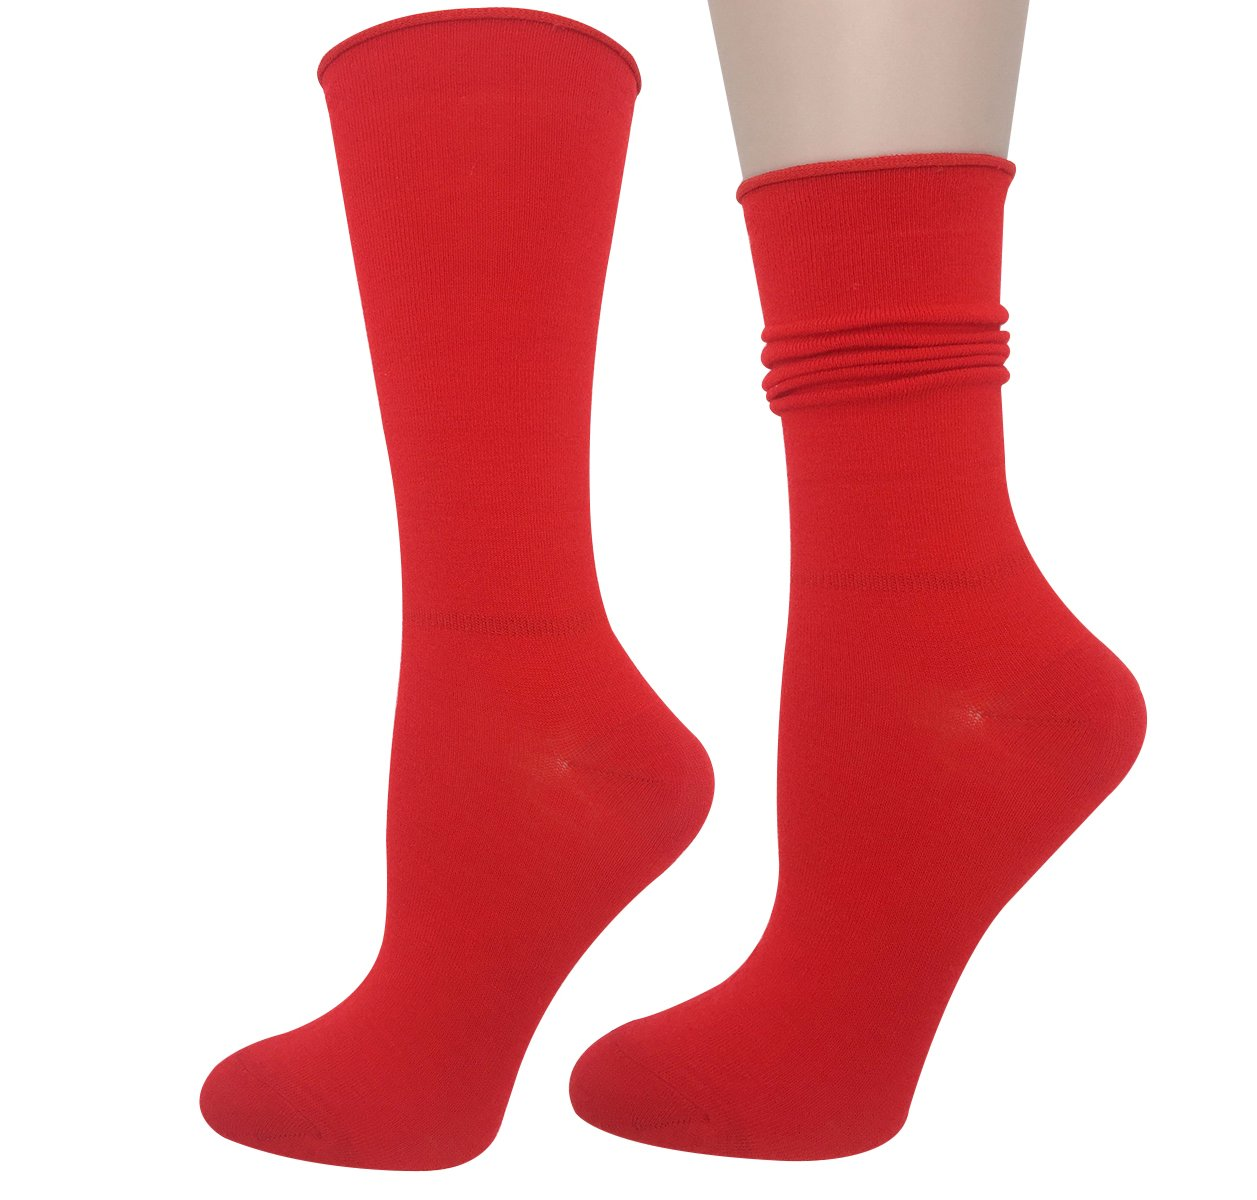 Cityelf Women's Classic Roll Top Cotton Compression Socks (6 pairs, mix) by Cityelf (Image #4)